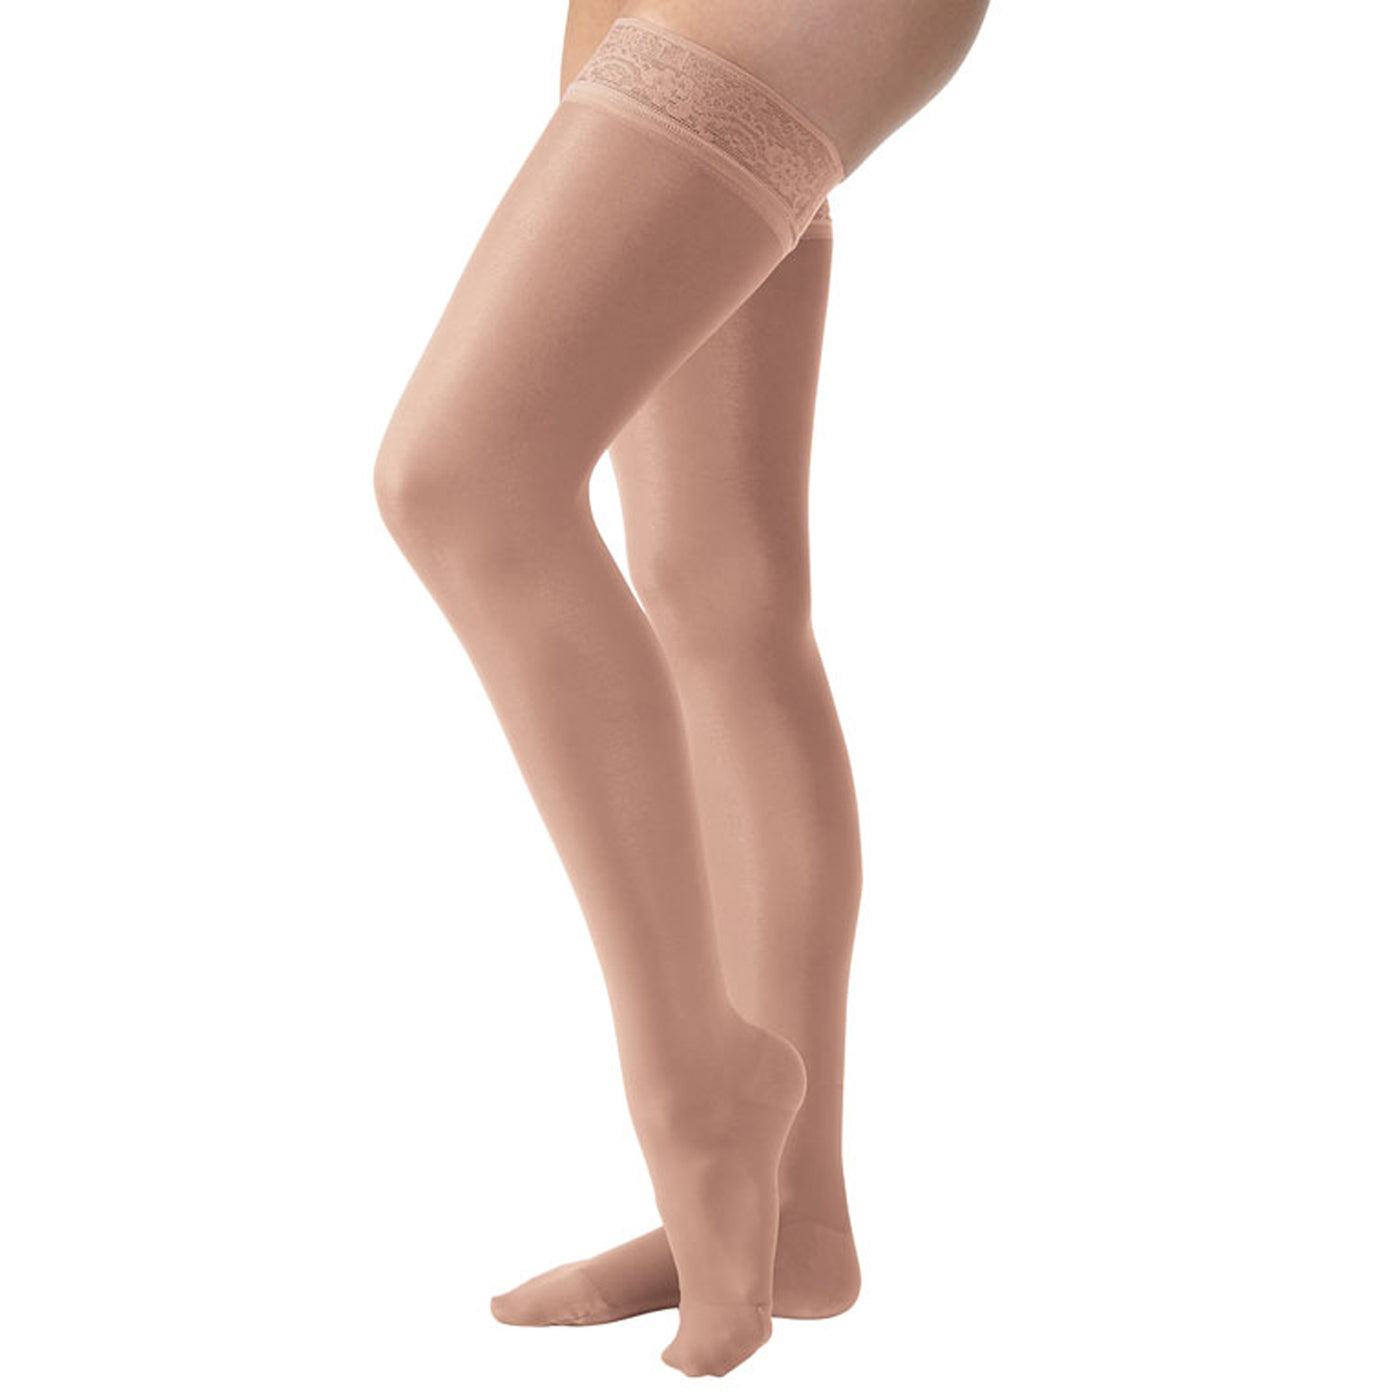 d70f64560 BrightLife Direct · Home Jobst UltraSheer Thigh High 15-20mmHg - Lace Band.  Hover to zoom